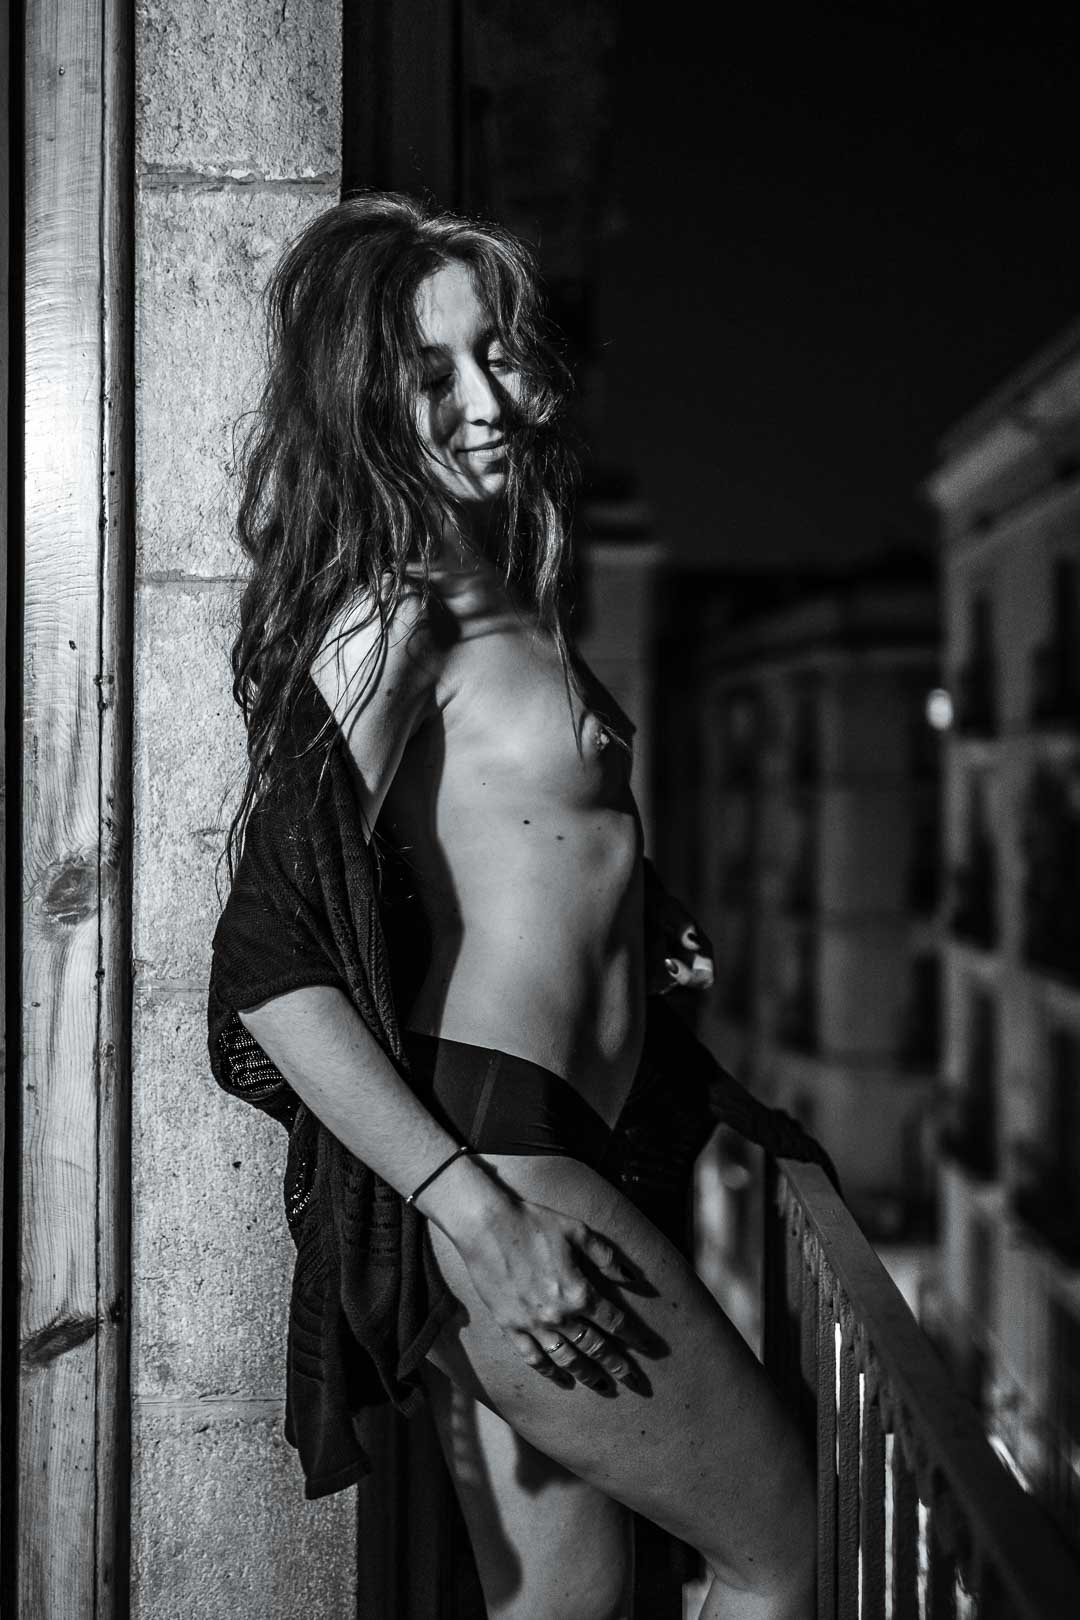 Artistic nude photograph of a woman on a balcony